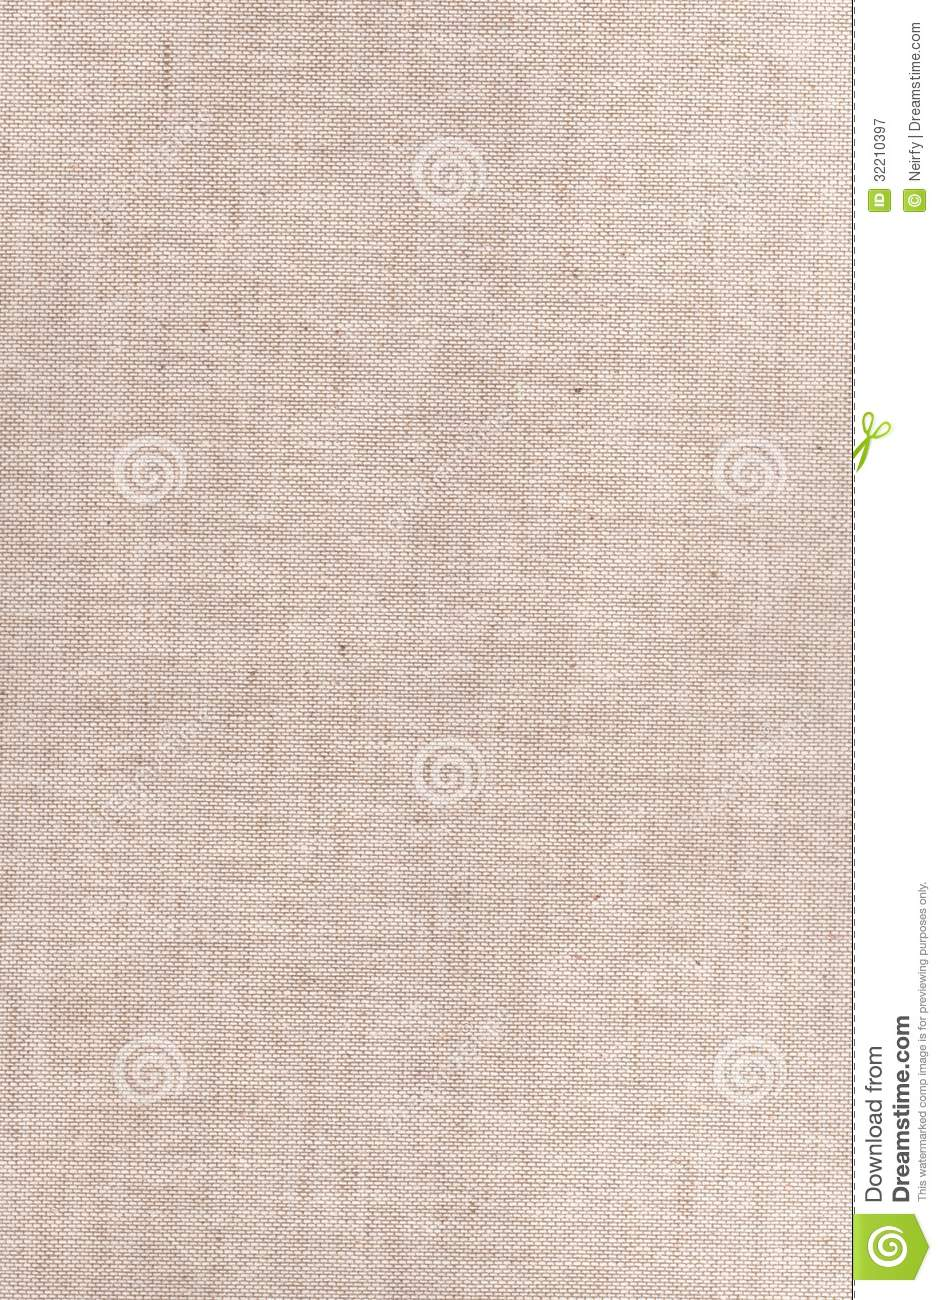 Hardcover Book Texture : Old book cloth background royalty free stock photography